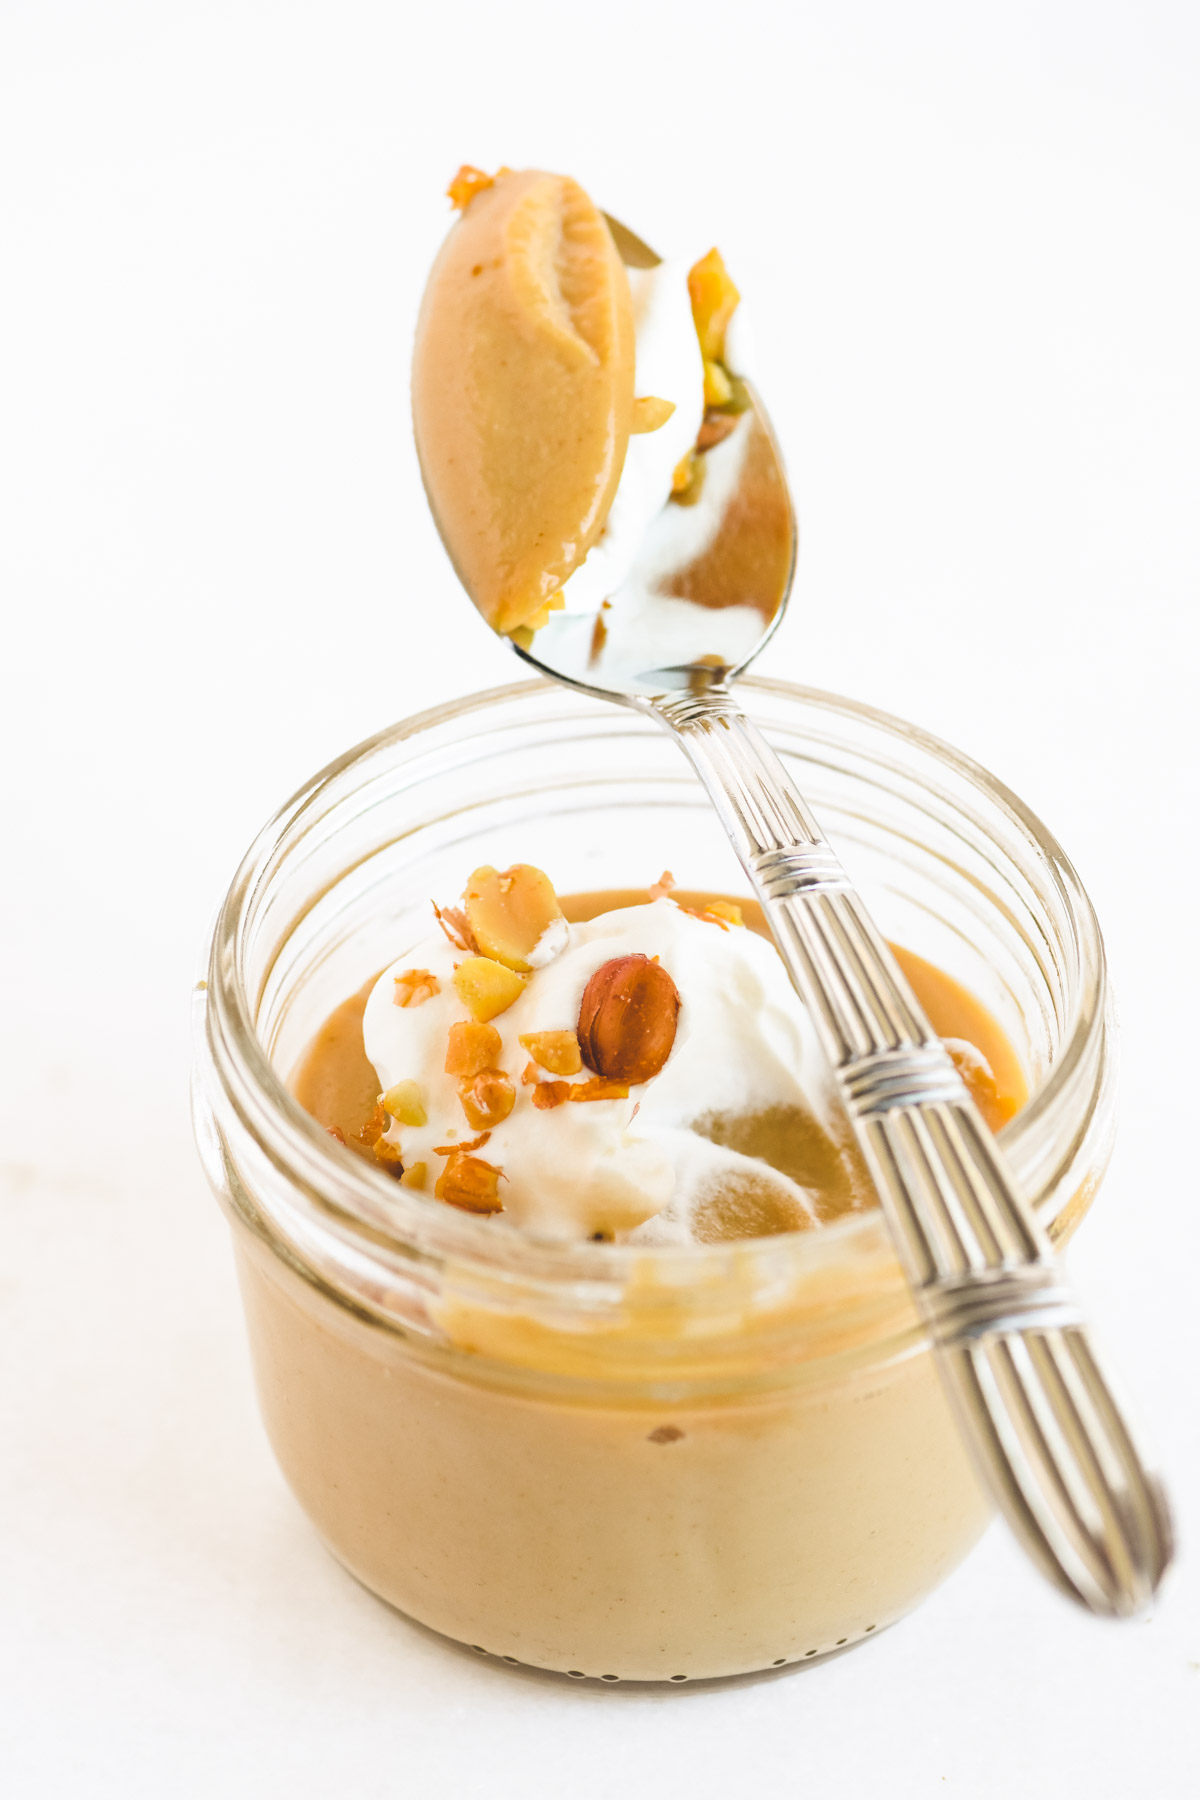 small jar of peanut butter pudding with spoon